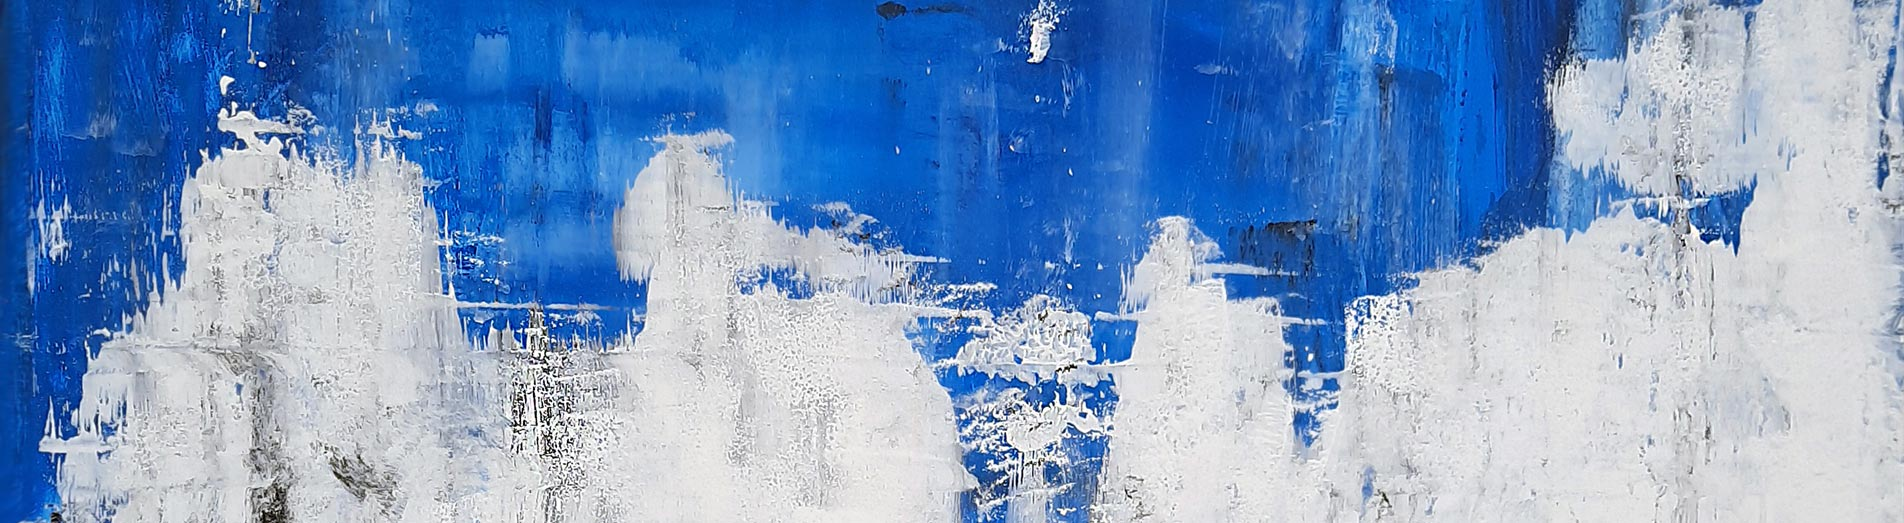 Waterfall painting by patrick joosten,